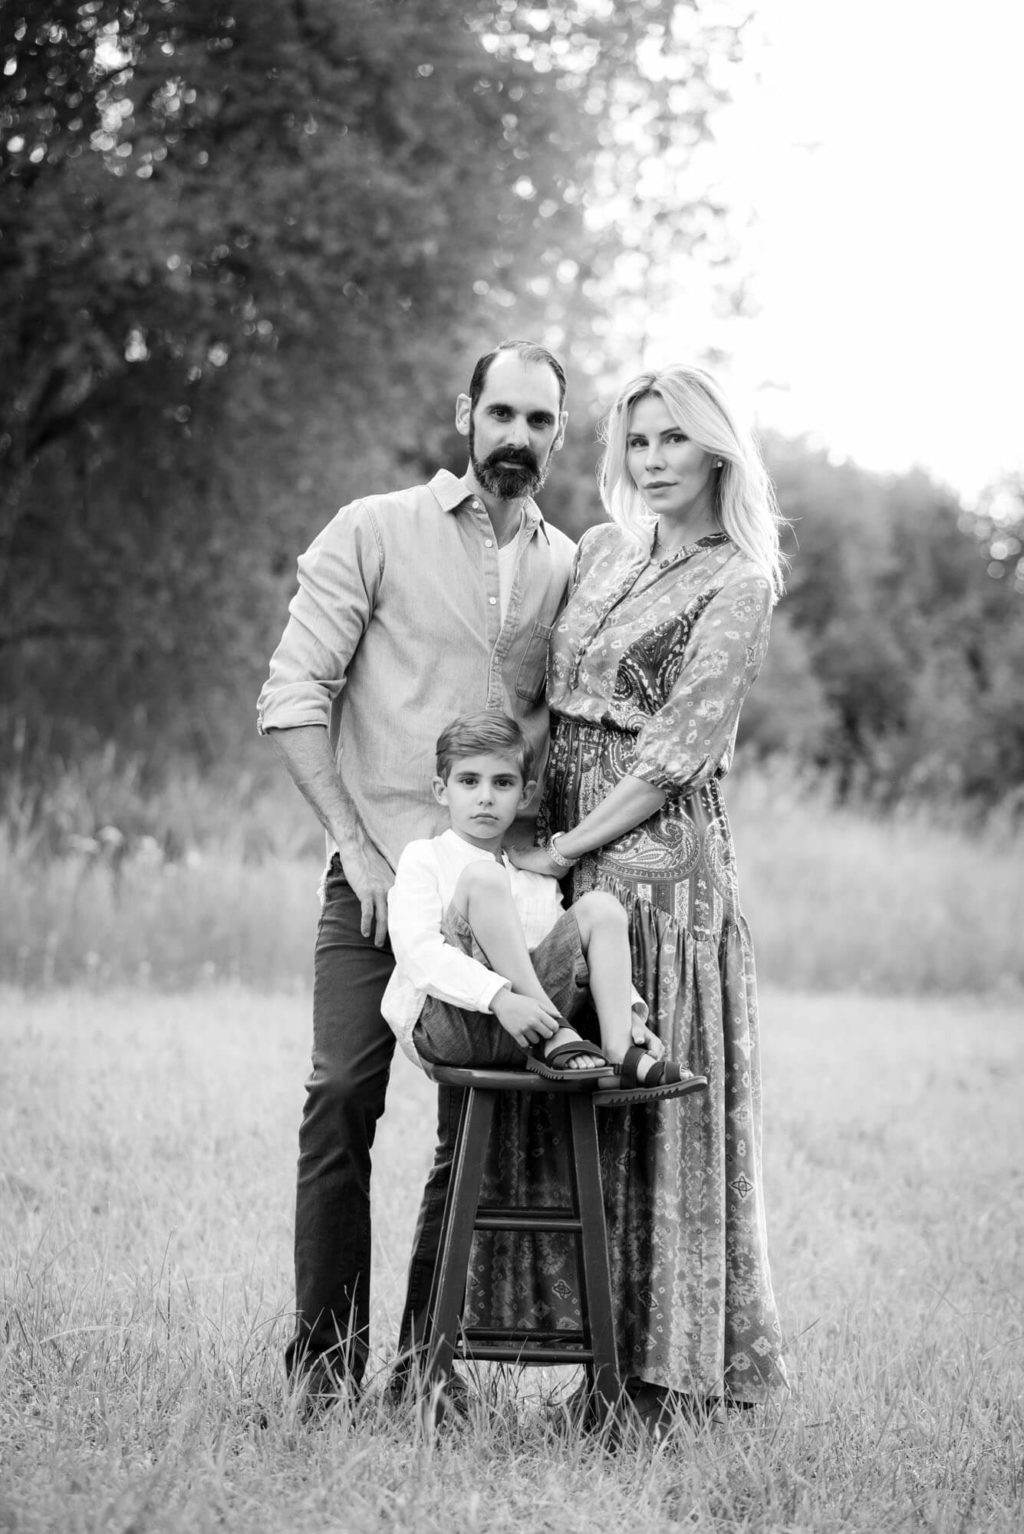 black and white family portrait taken by Michele Cardamone